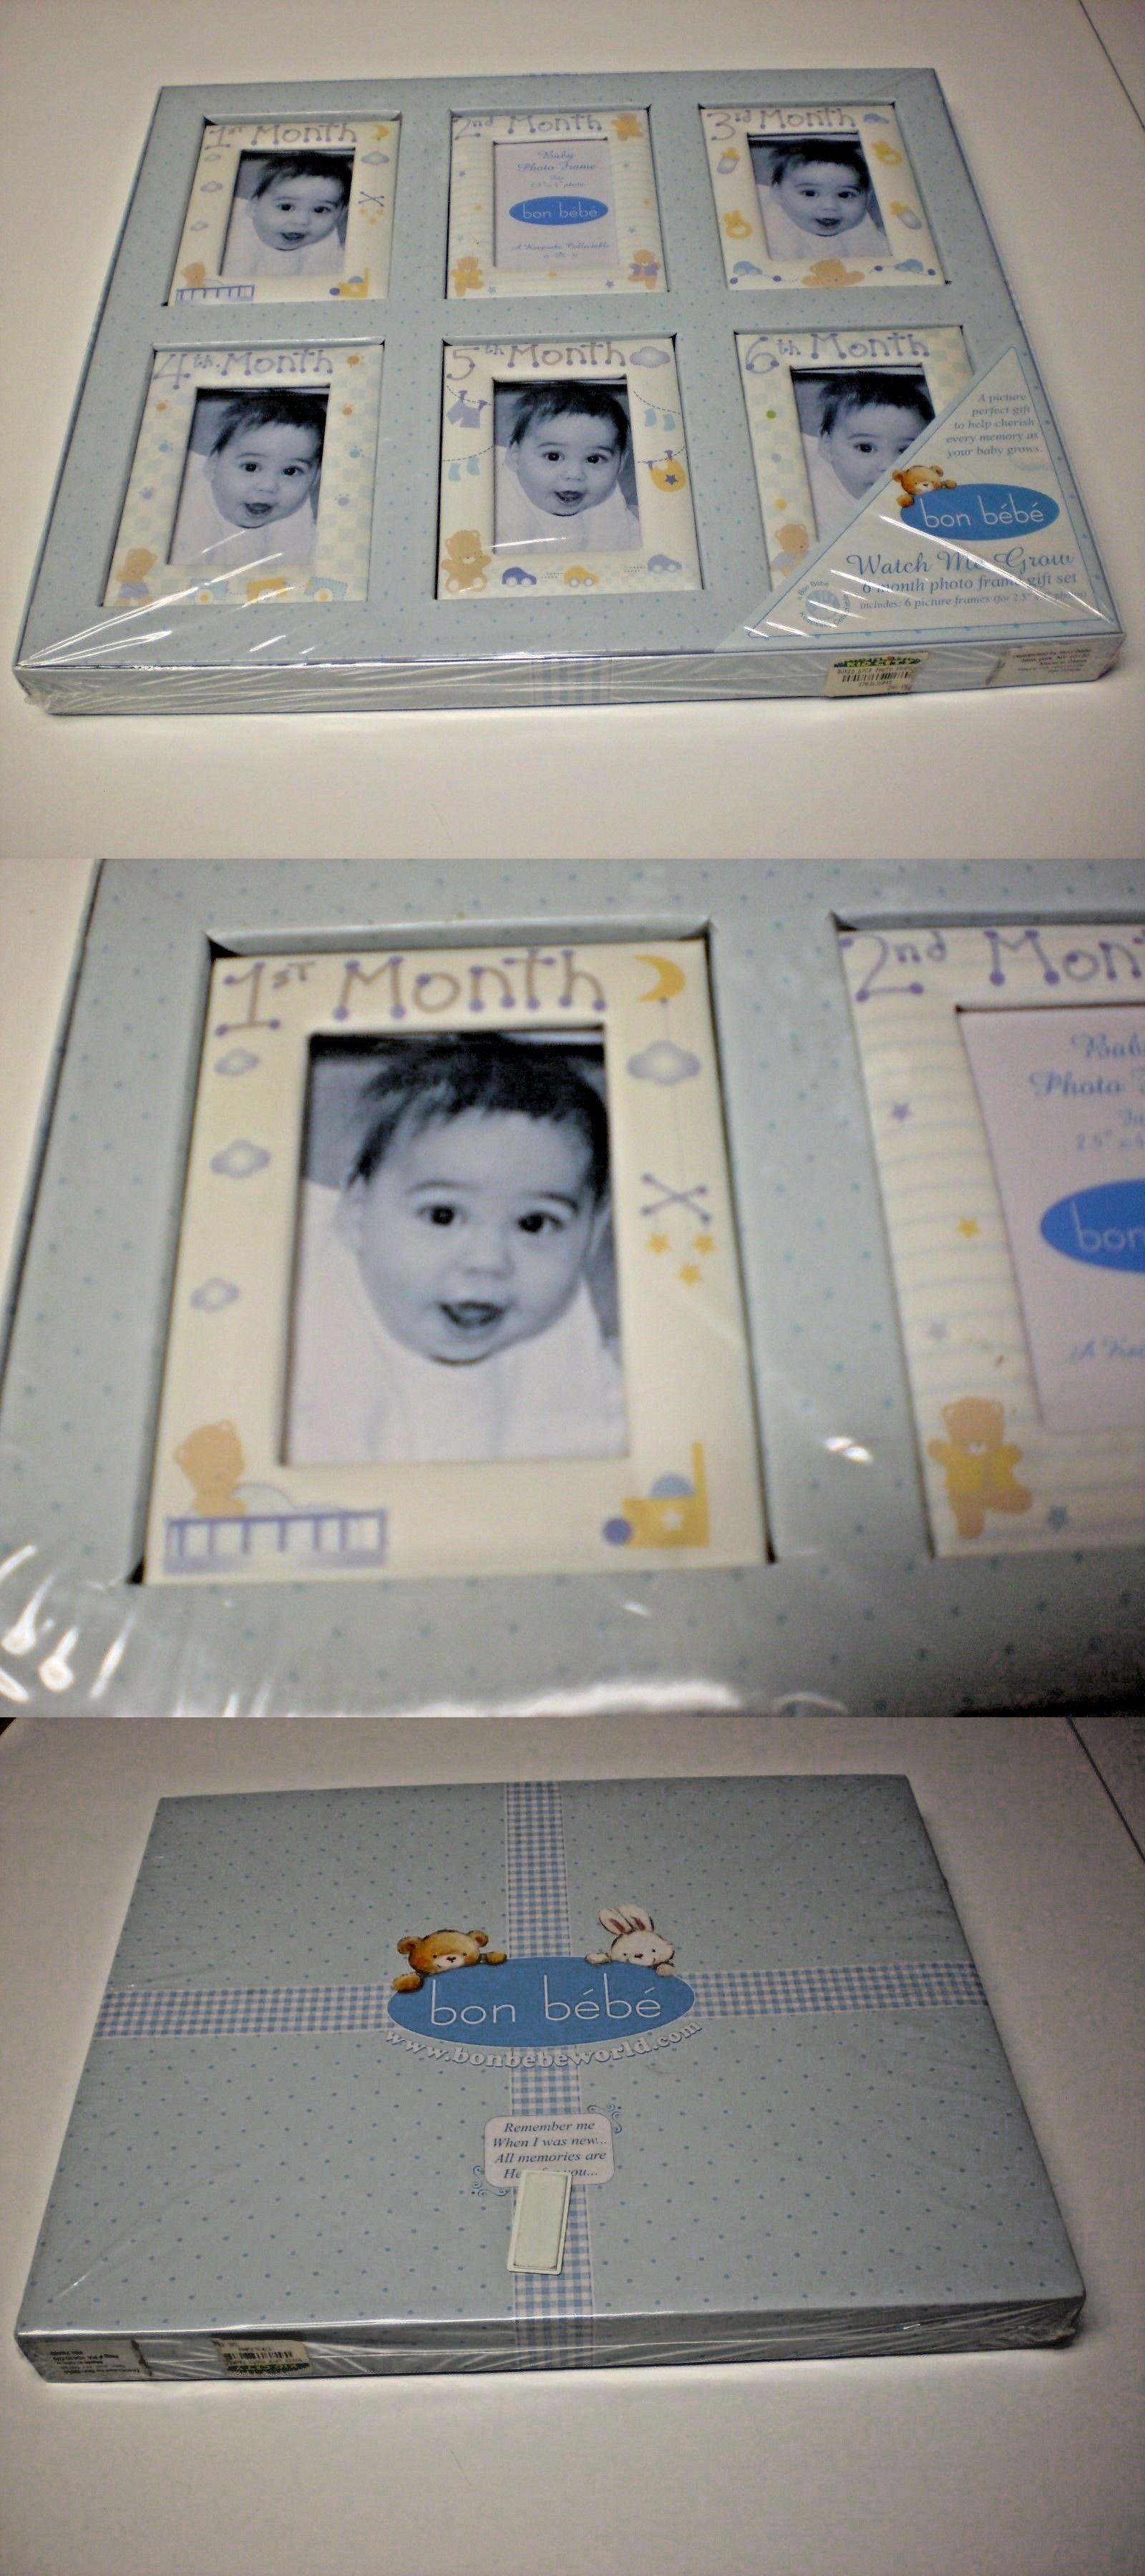 Baby Picture Frames 117392 Bon Bebe Watch Me Grow 6 Month Photo